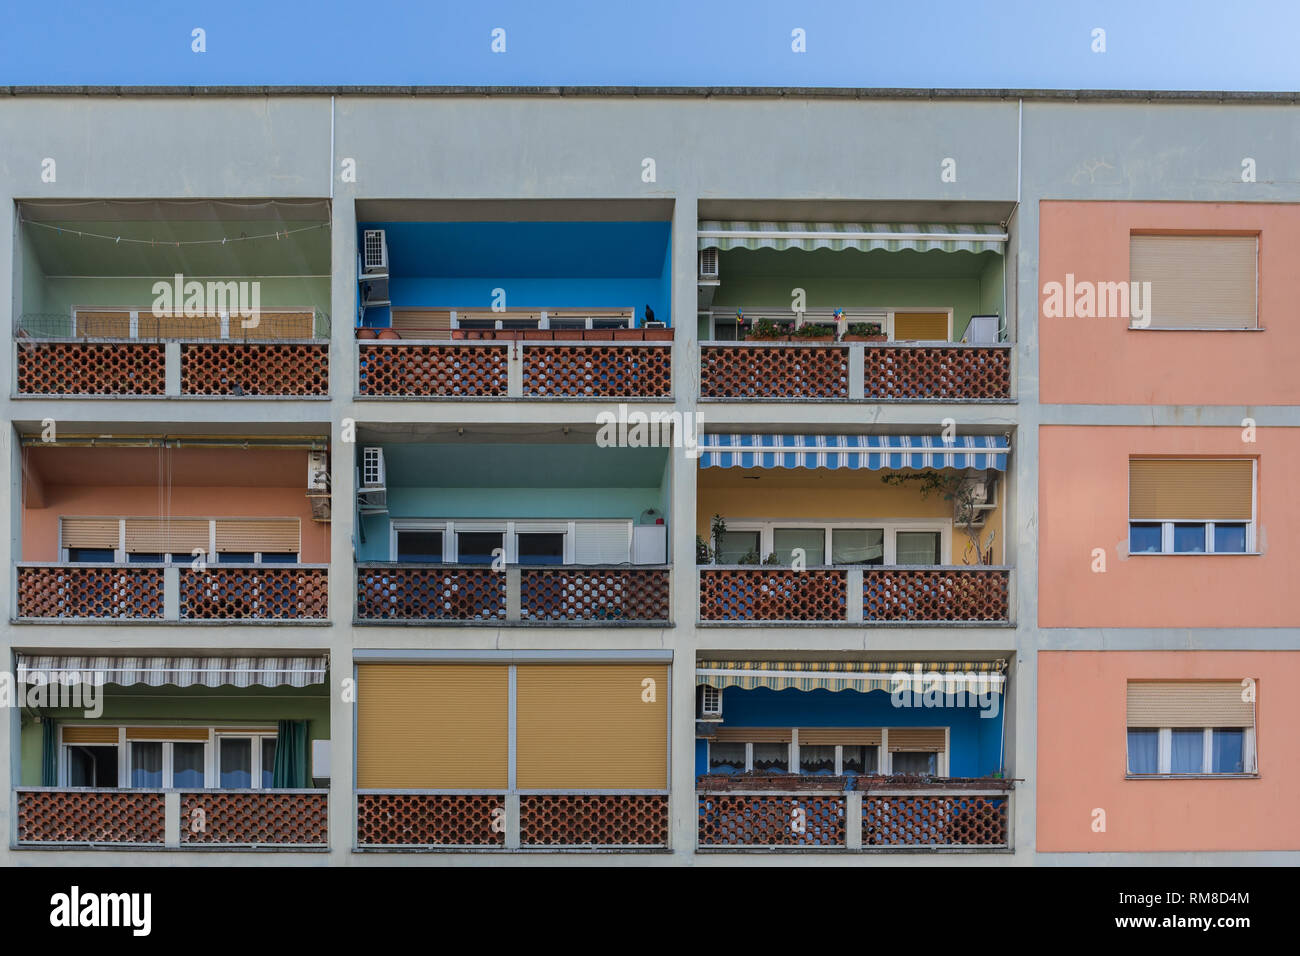 Multistorey apartments building with colorful balconies - Koper, Slovenia - Stock Image